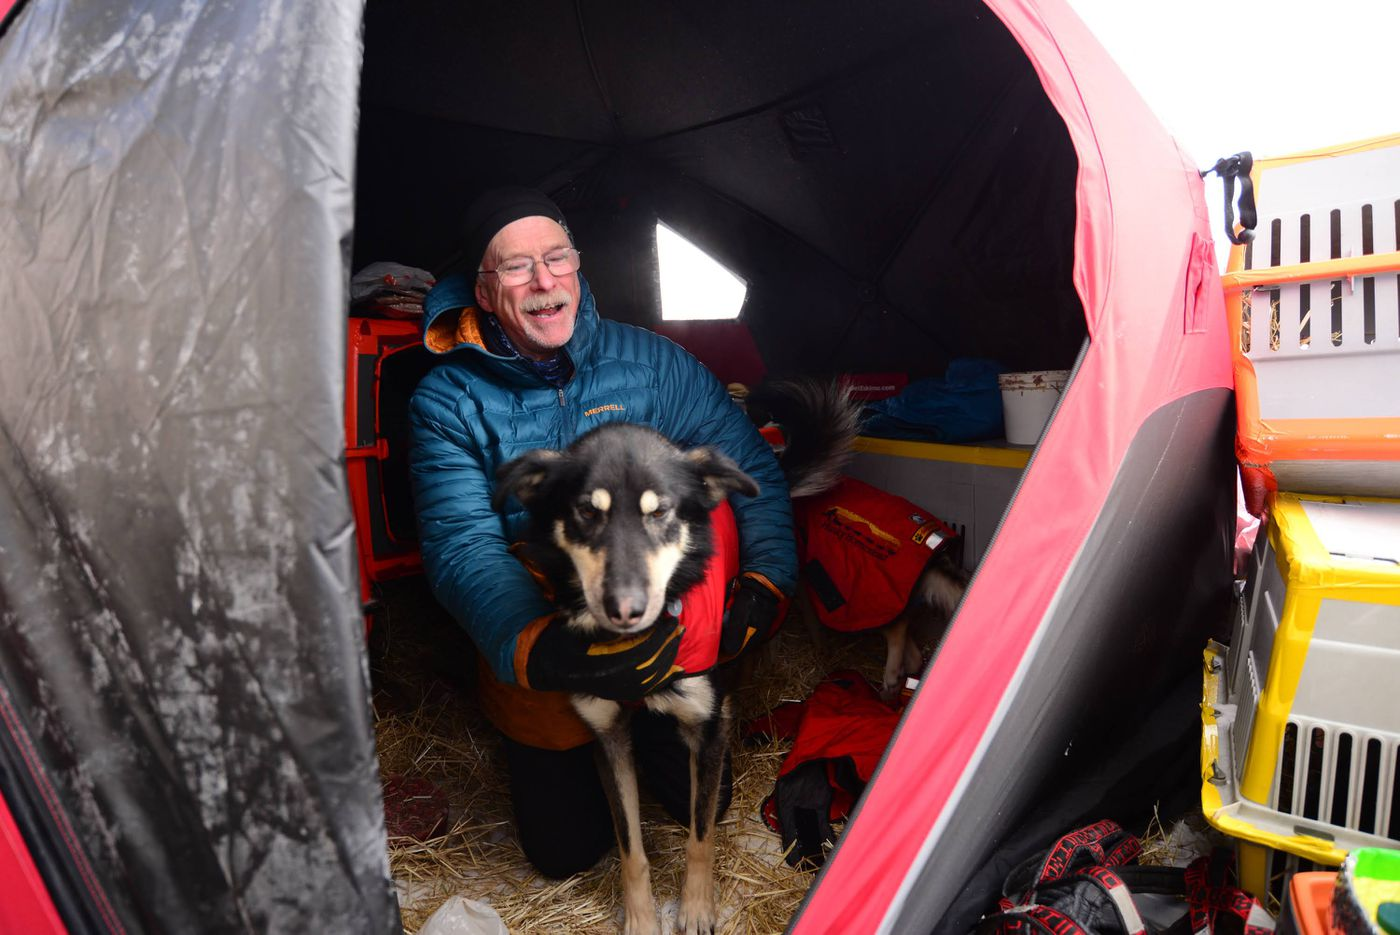 Jeff King waits in a tent in Kotzebue before the start of the Kobuk 440 Sled Dog Race on April 2, 2021. (Photo by Berett Wilber)